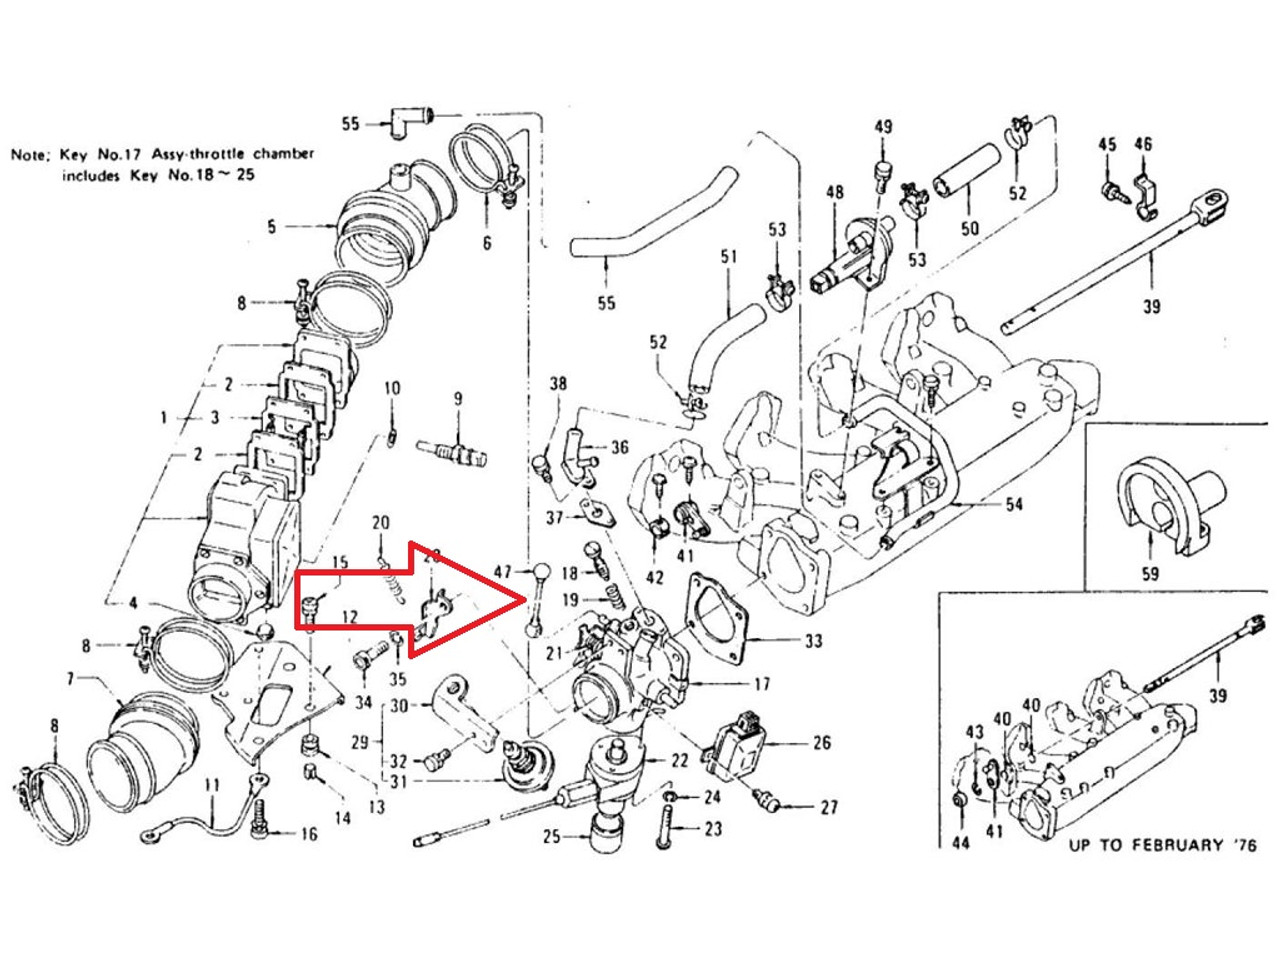 hight resolution of x throttle linkage connecting rod at throttle body for 280z 280zx 280z throttle body diagram